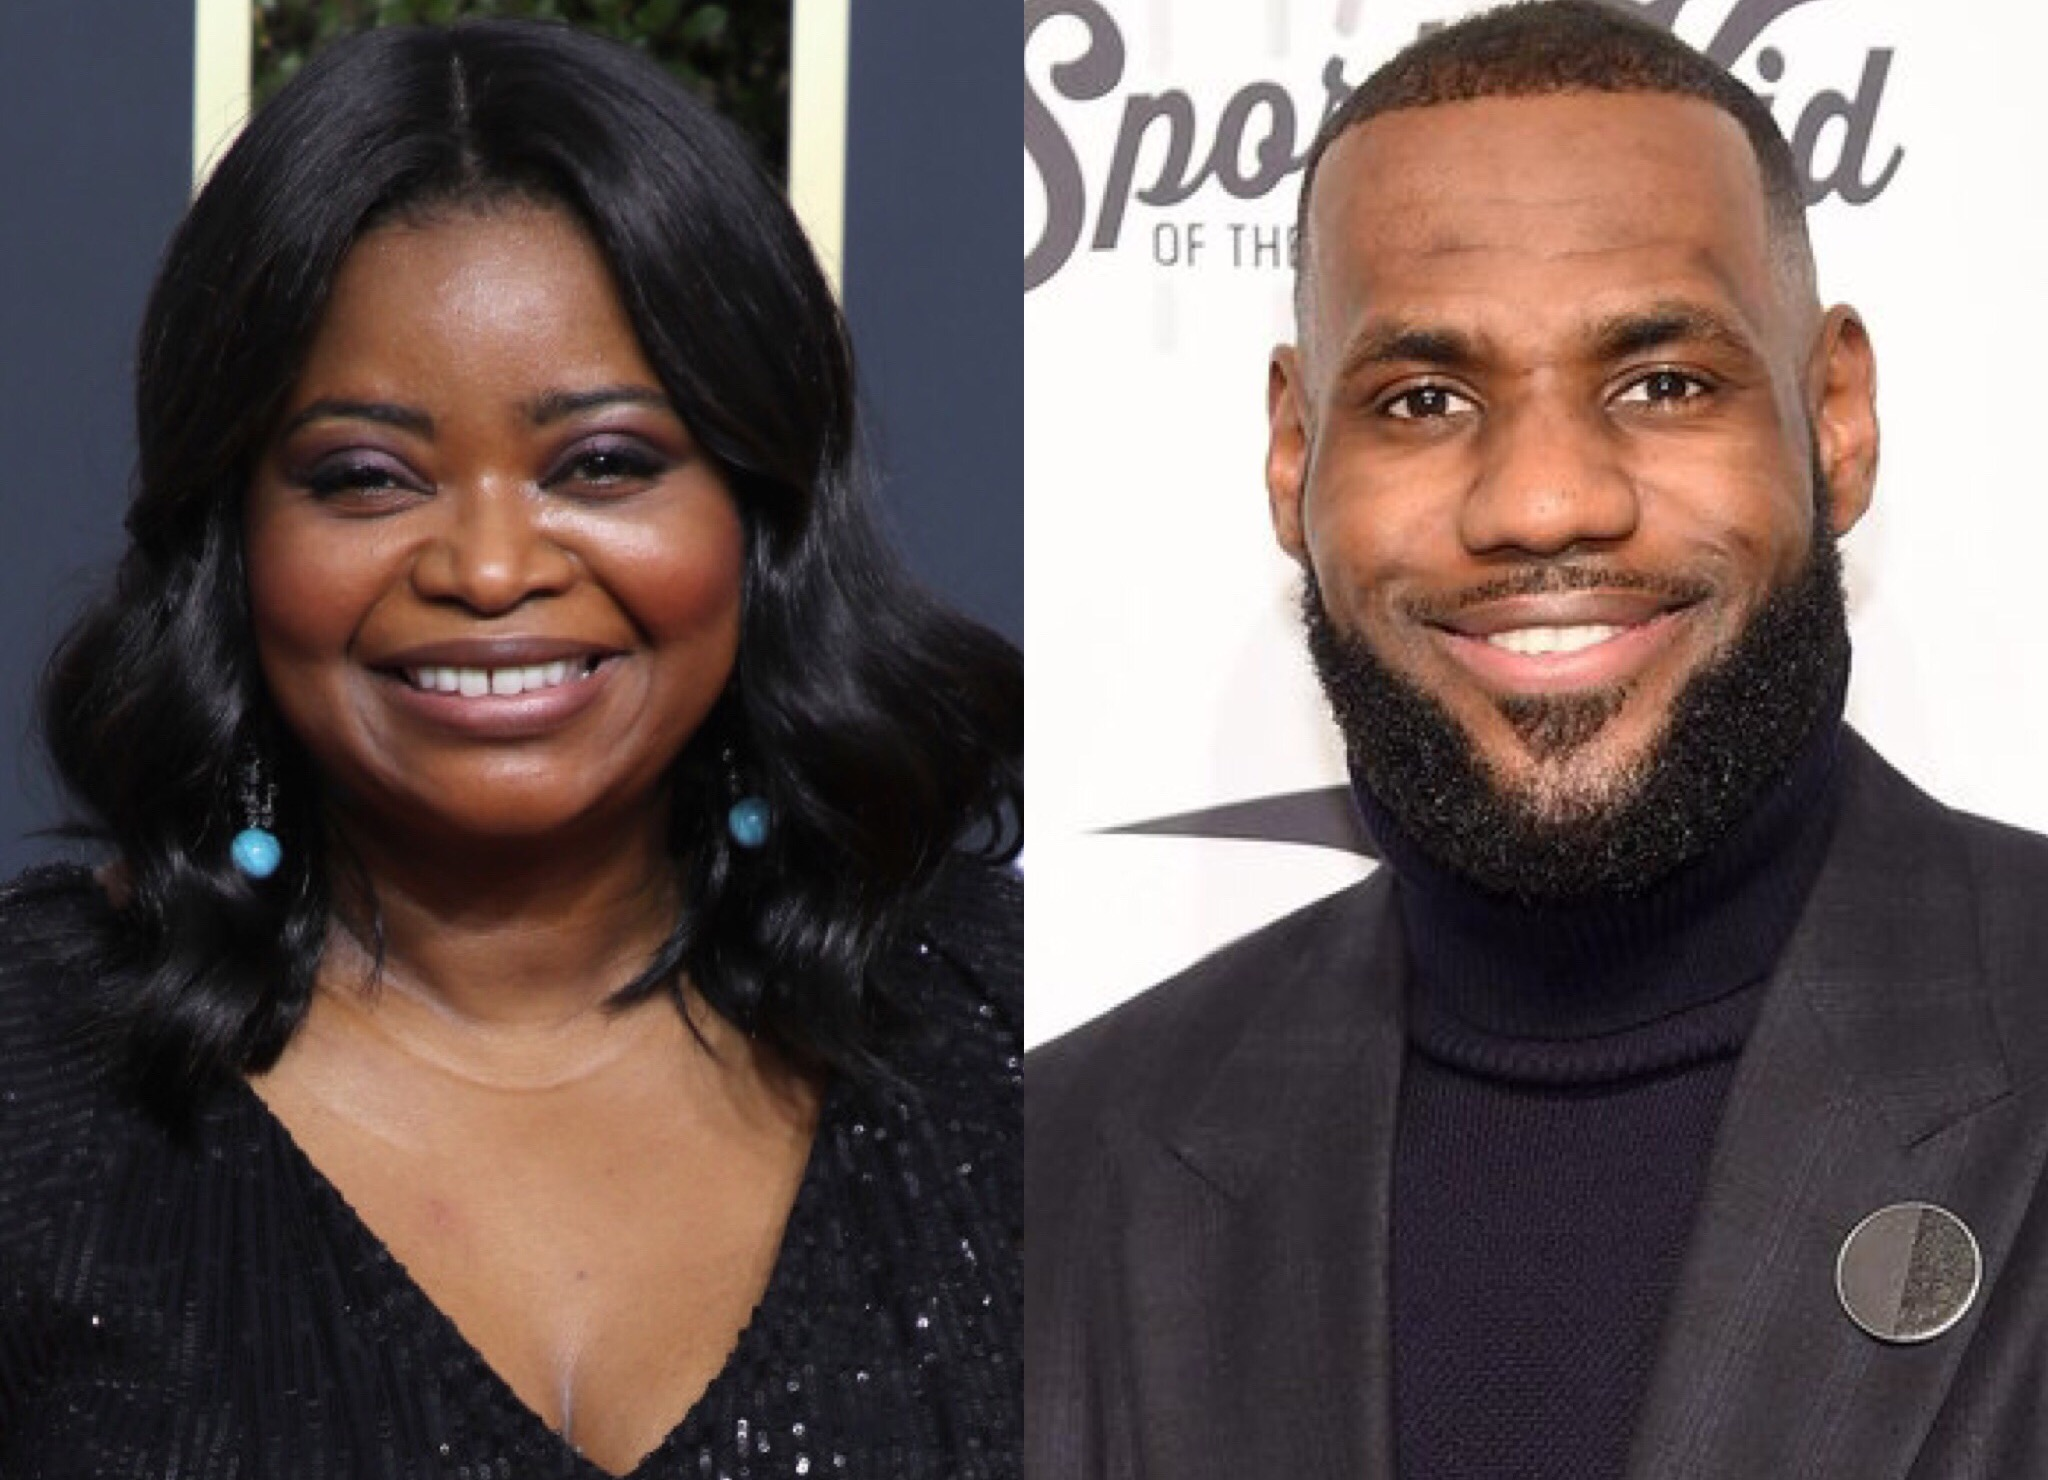 Octavia Spencer LeBron James